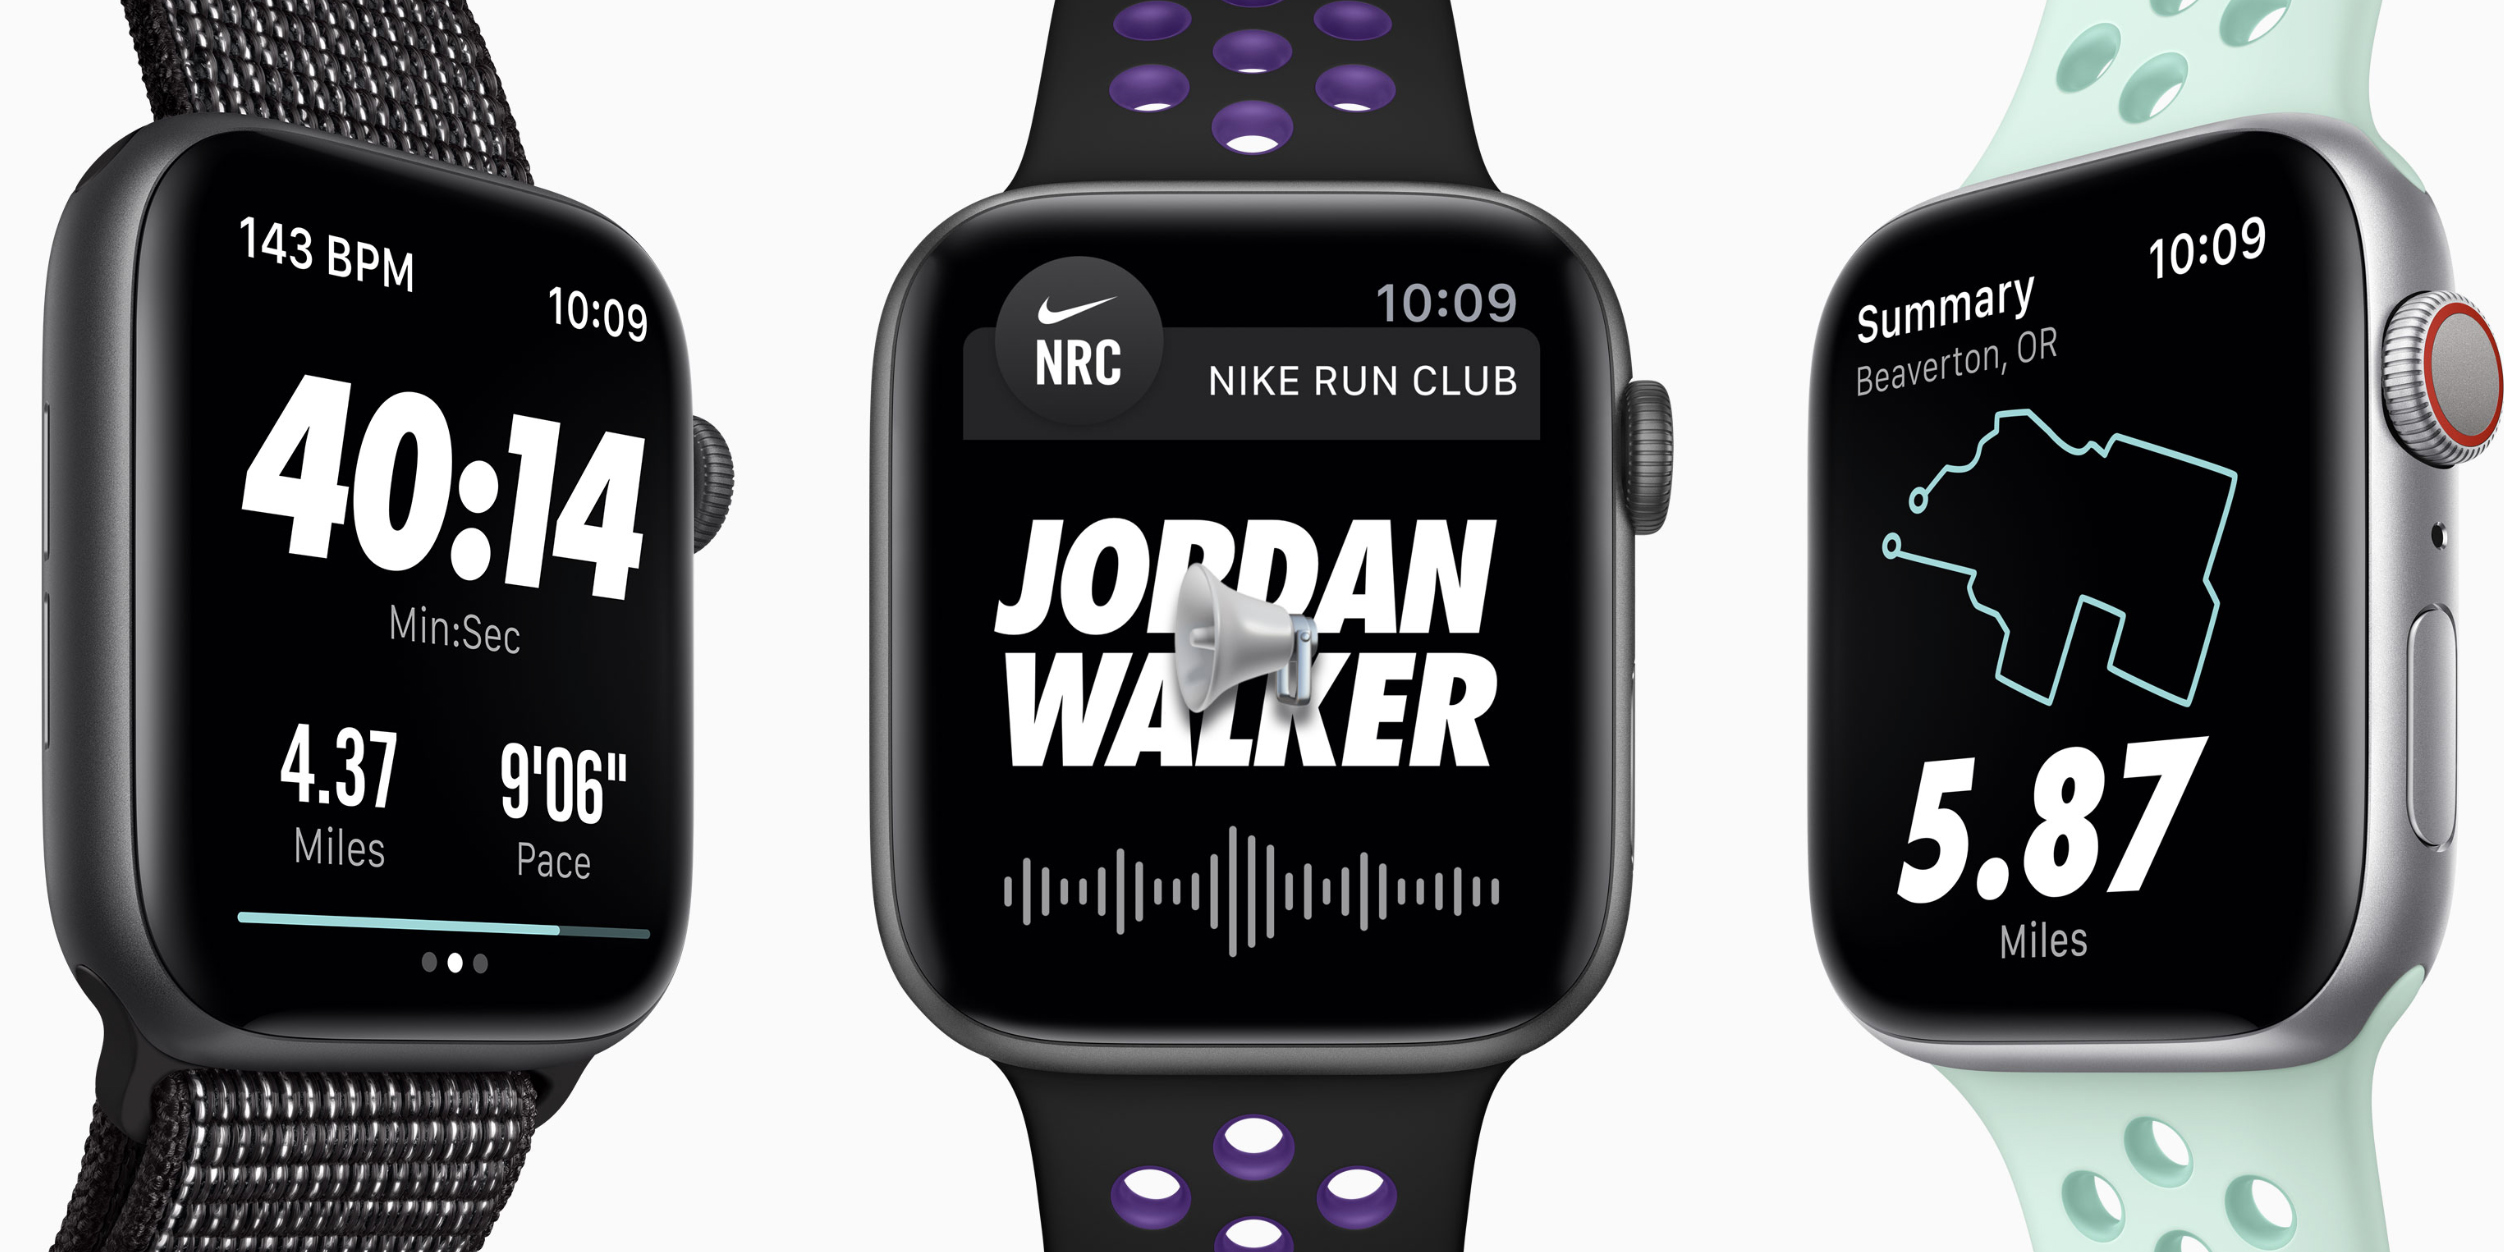 Apple Watch Nike+ is $100 off, plus deals on MacBooks, more ...